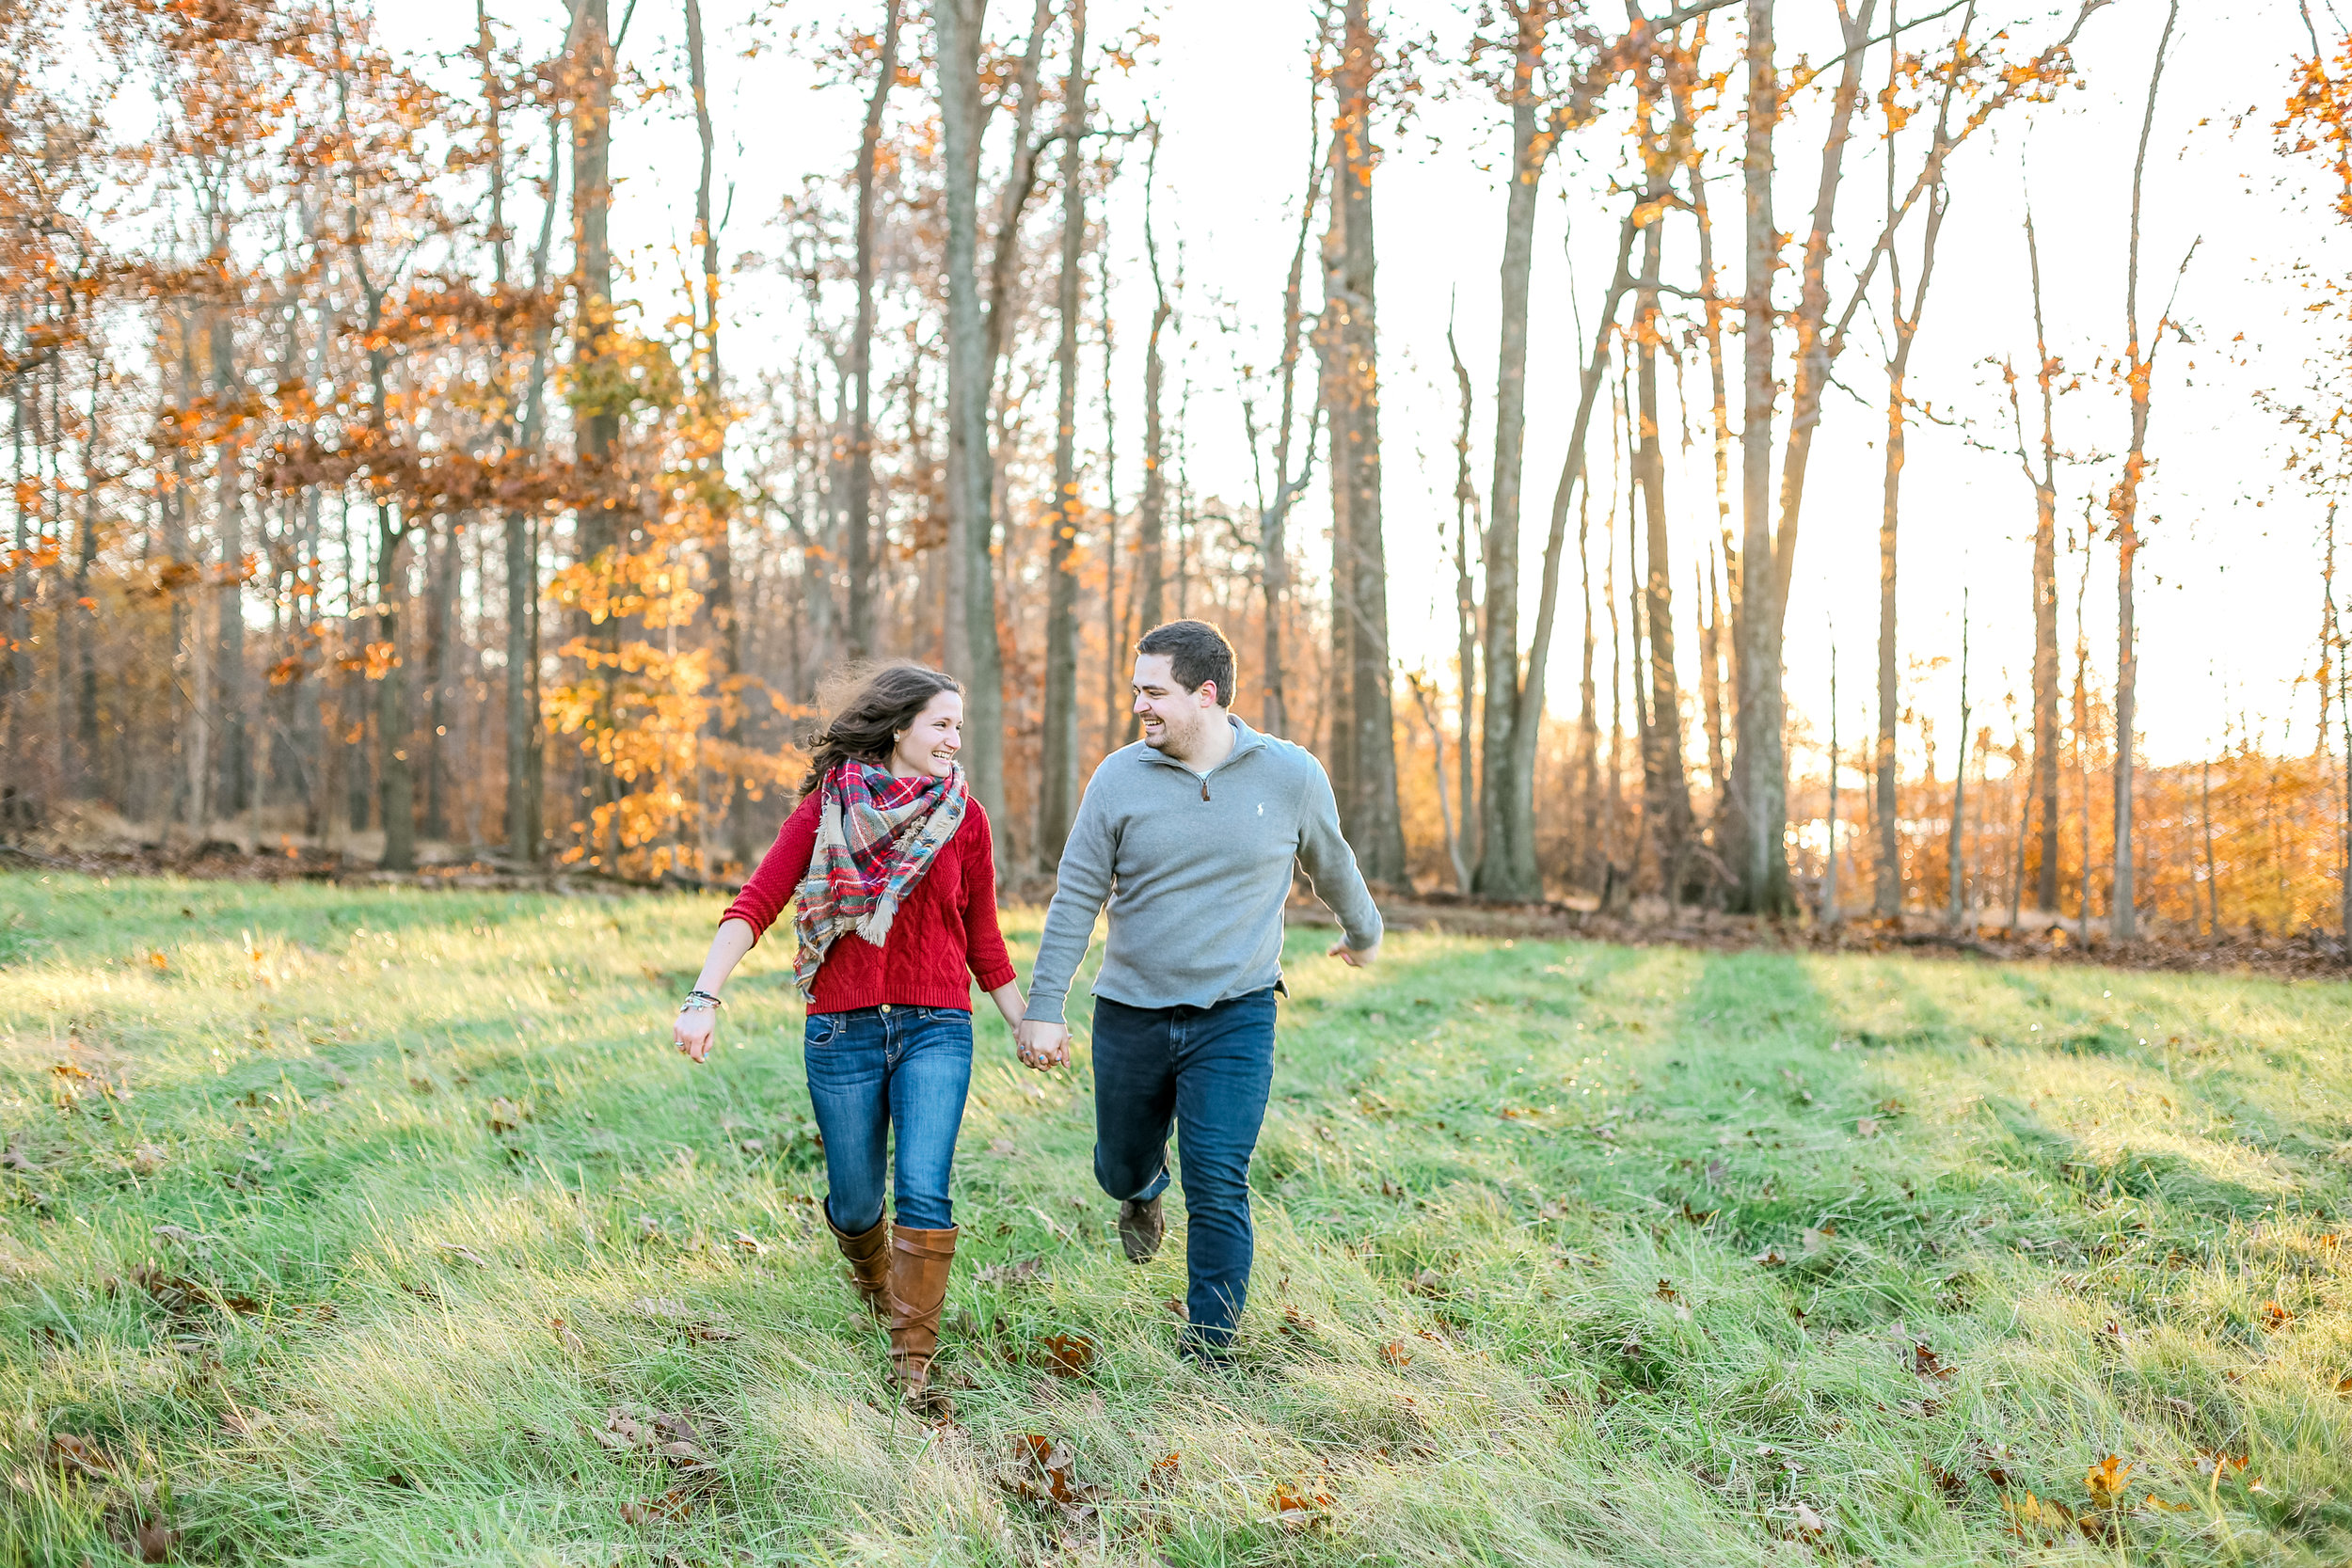 Bucks county Peace Valley Park Doylestown Lehigh Valley fall windy engagement session wedding and lifestyle photographer Lytle Photo Co (73 of 109).jpg